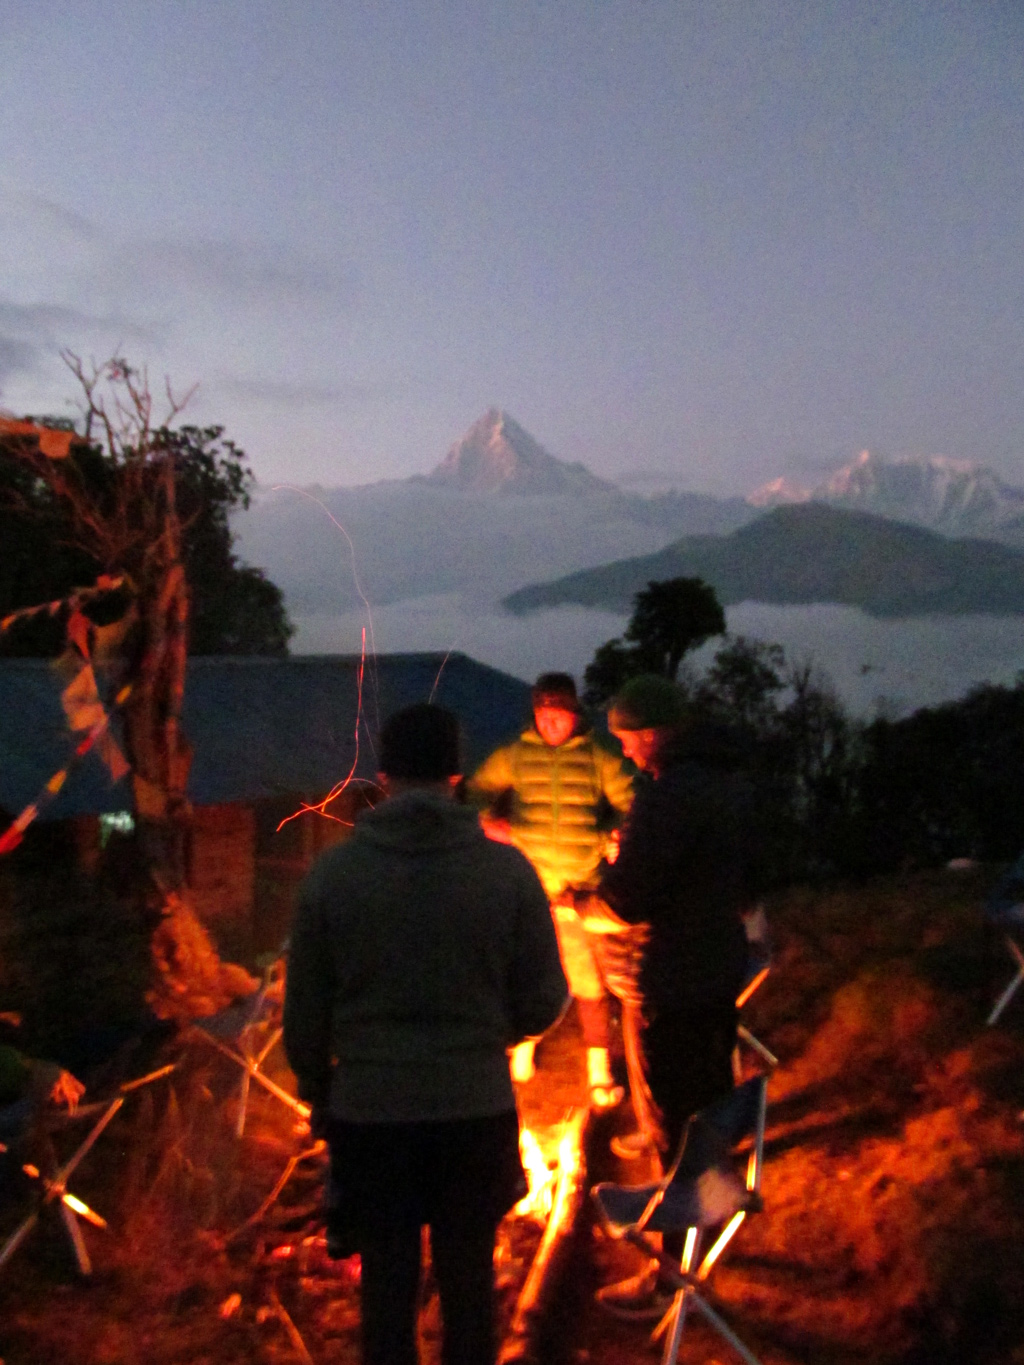 Field Report: Nepal Trek 26937025387_4378562a5a_o